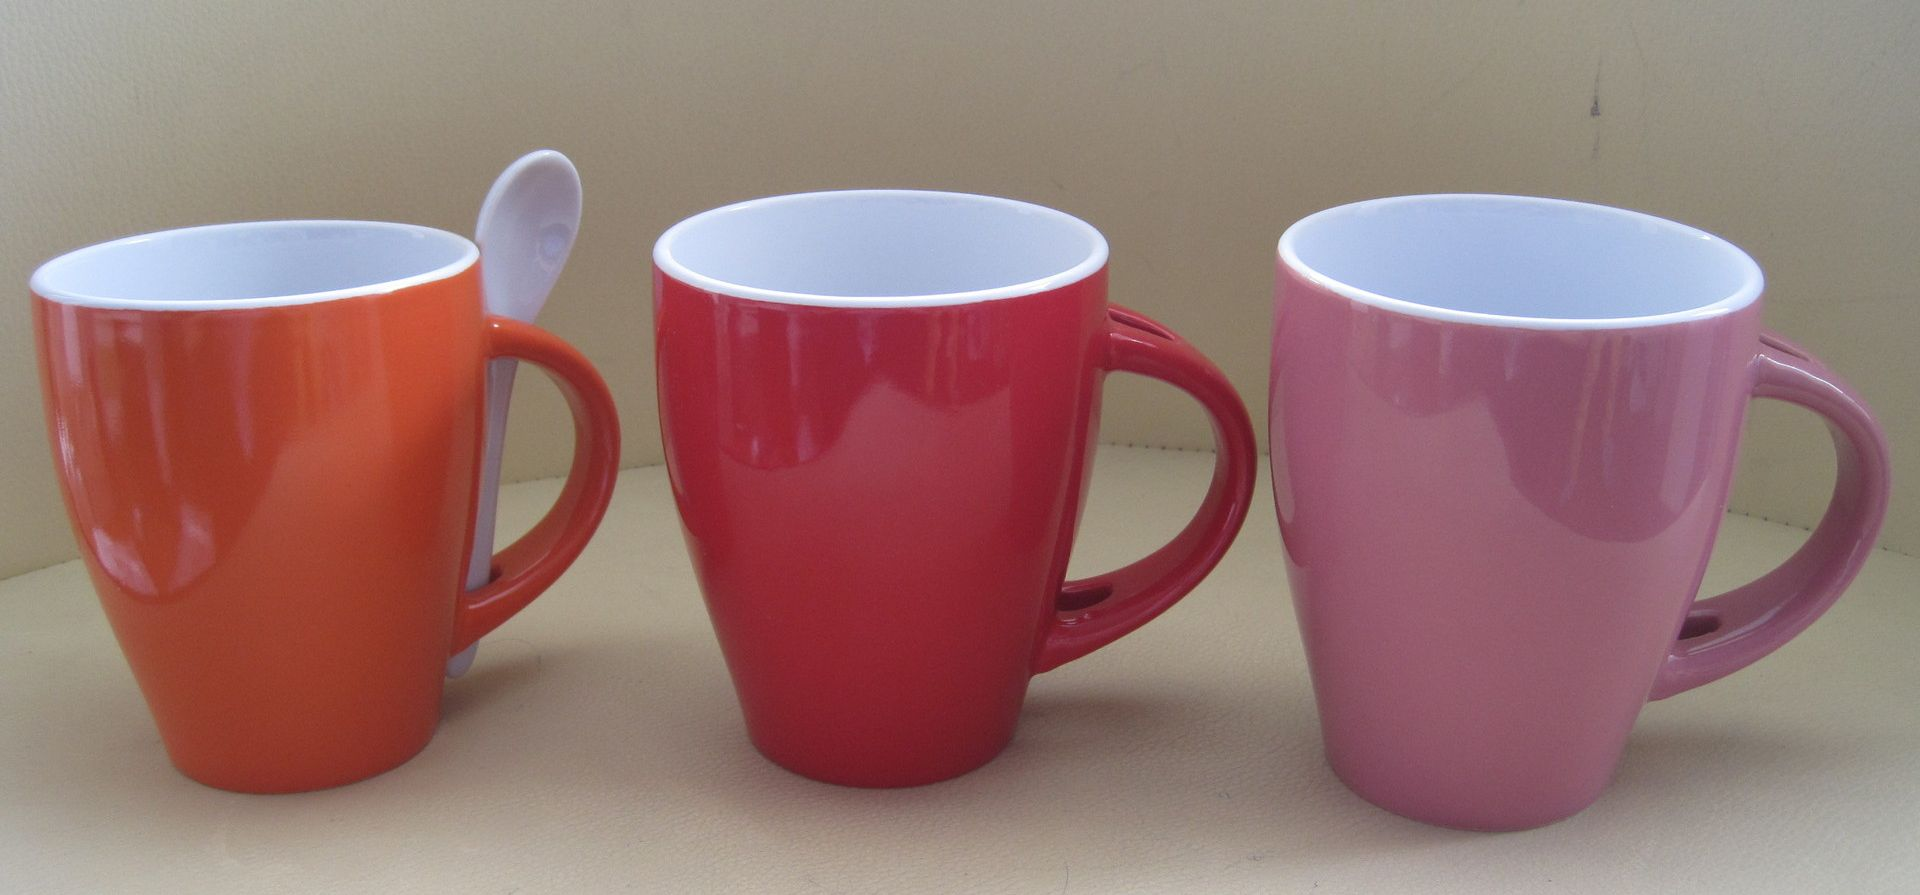 red-mugs-with-spoon.jpg